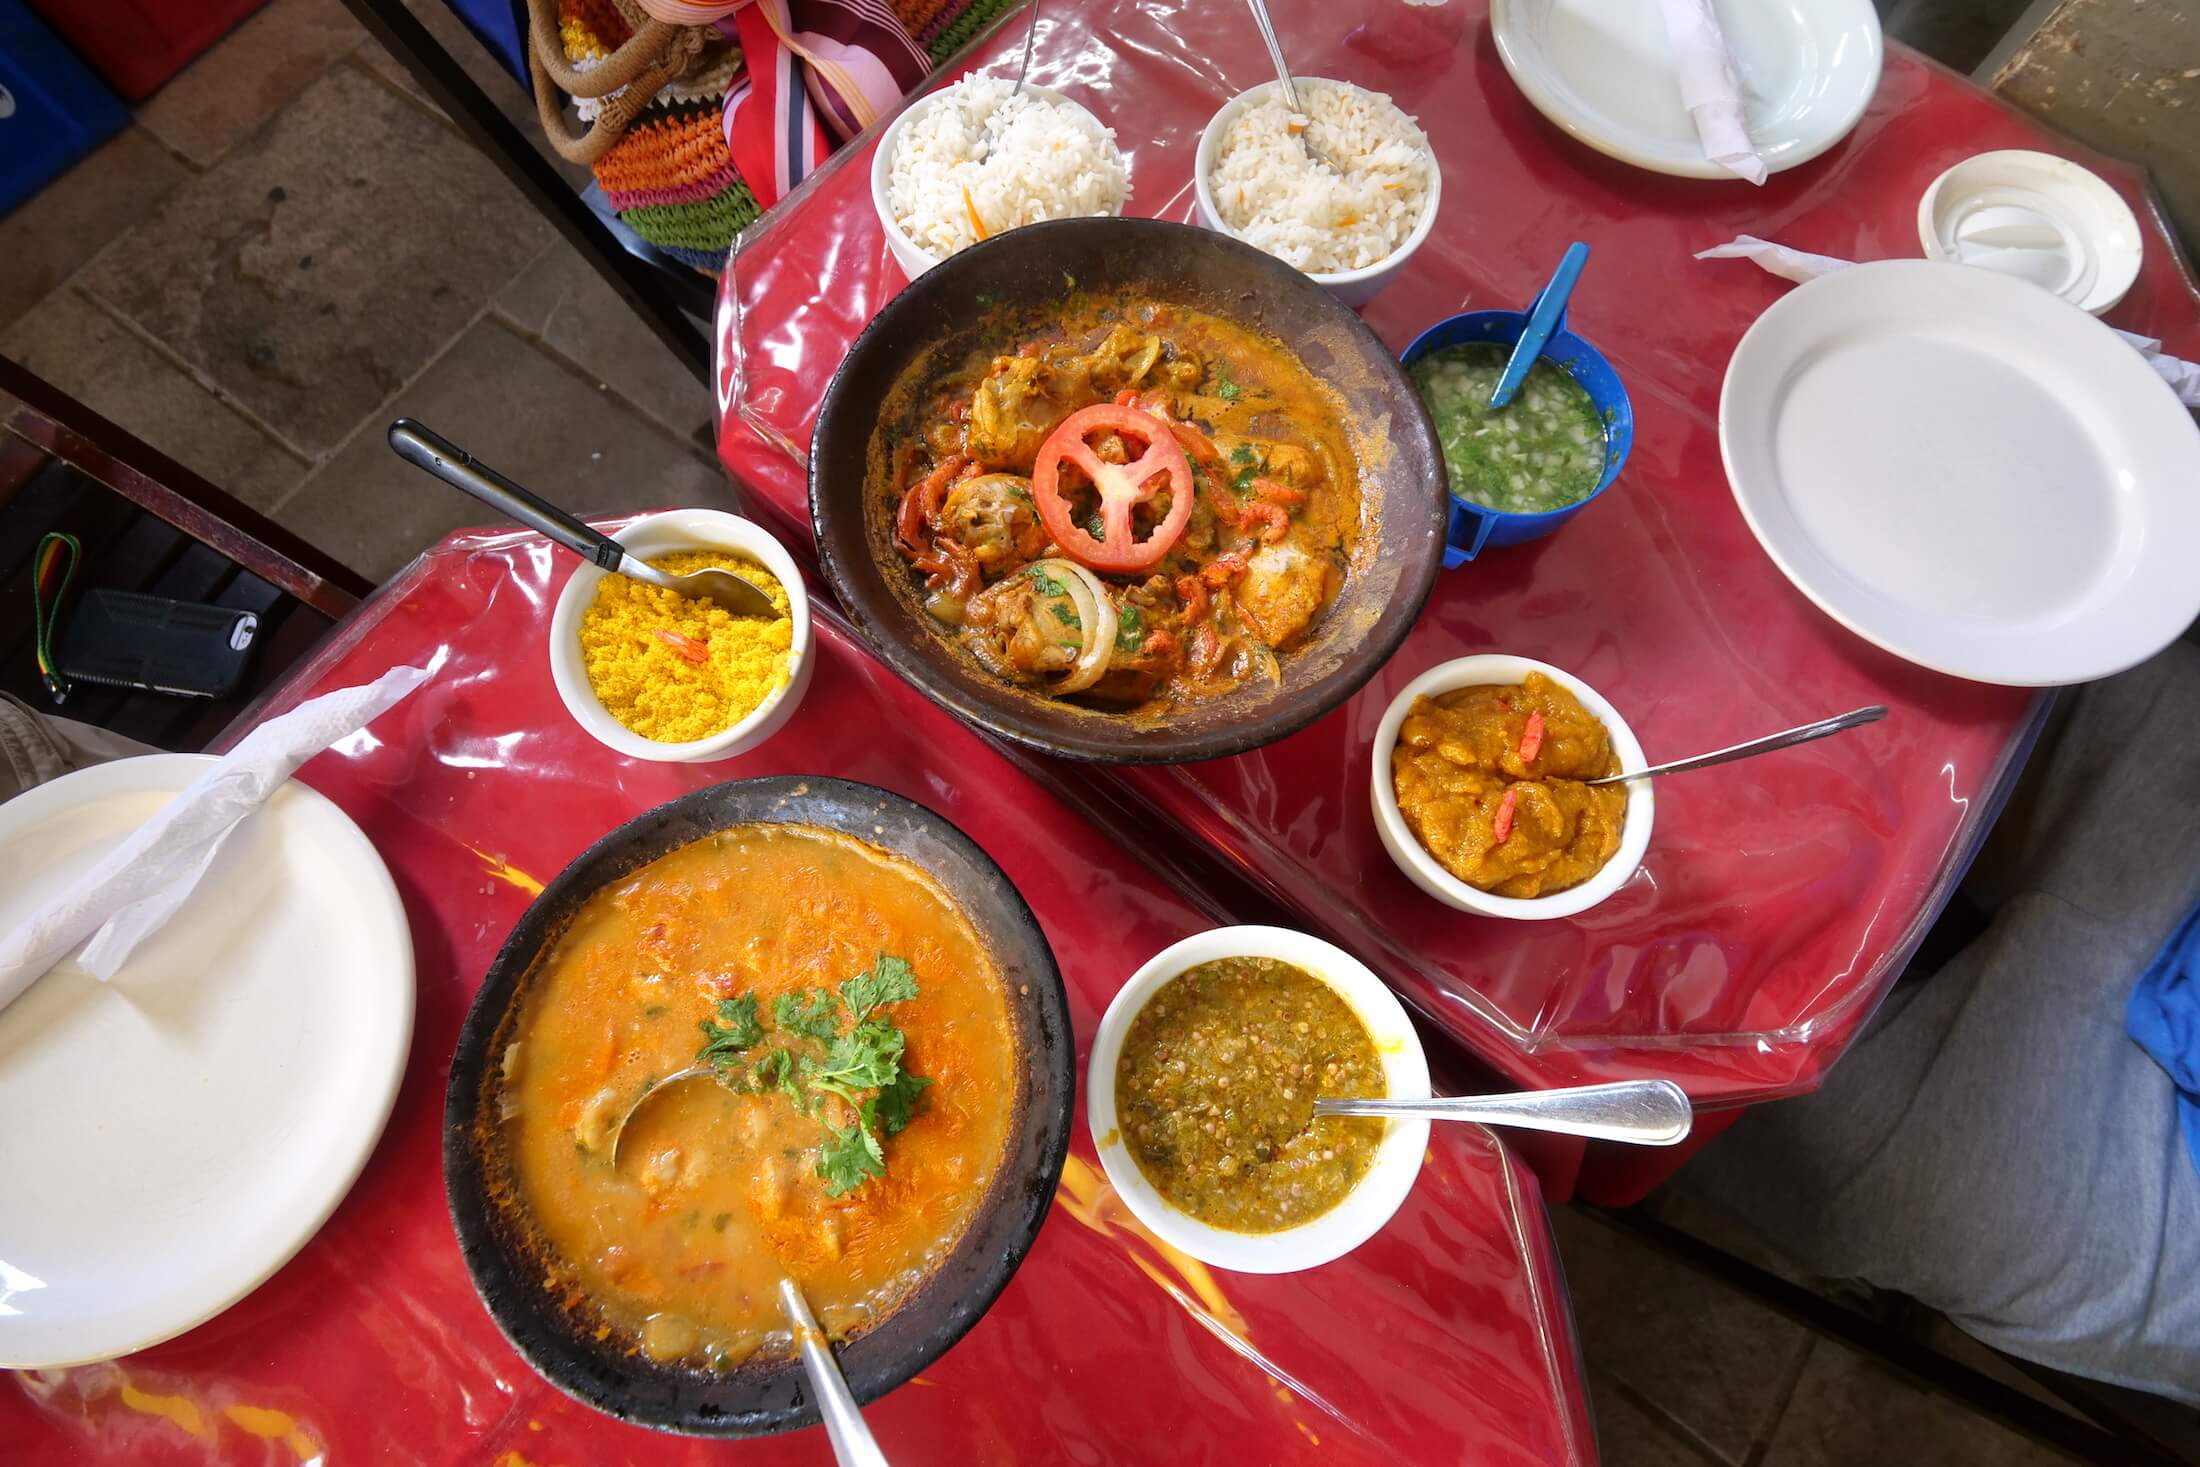 Be sure to eat as much local Salvador food as you can, this part of Brazil is just packed with delicious local Afro Brazilian dishes